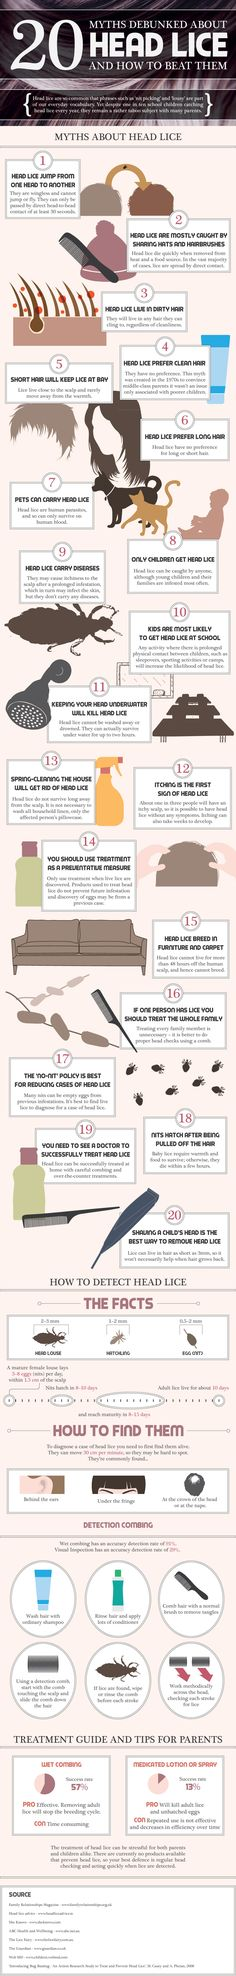 If there is a head lice breakout at your child's school or elsewhere, there are some basic measures you can take to prevent its spread. Learn more: http://www.healthline.com/health-slideshow/head-lice-prevention #lice #healthykids this is an amazing thing to pin. I don't have lice but I feel like every year there's another lice outbreak on the news.